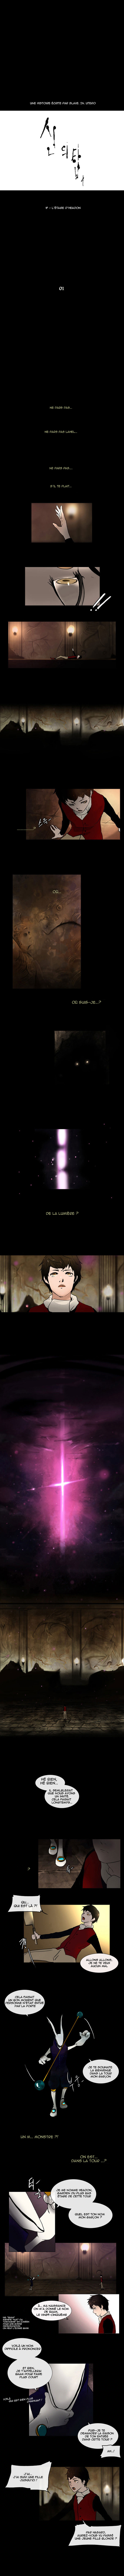 tower_of_god_ch01_3_fr